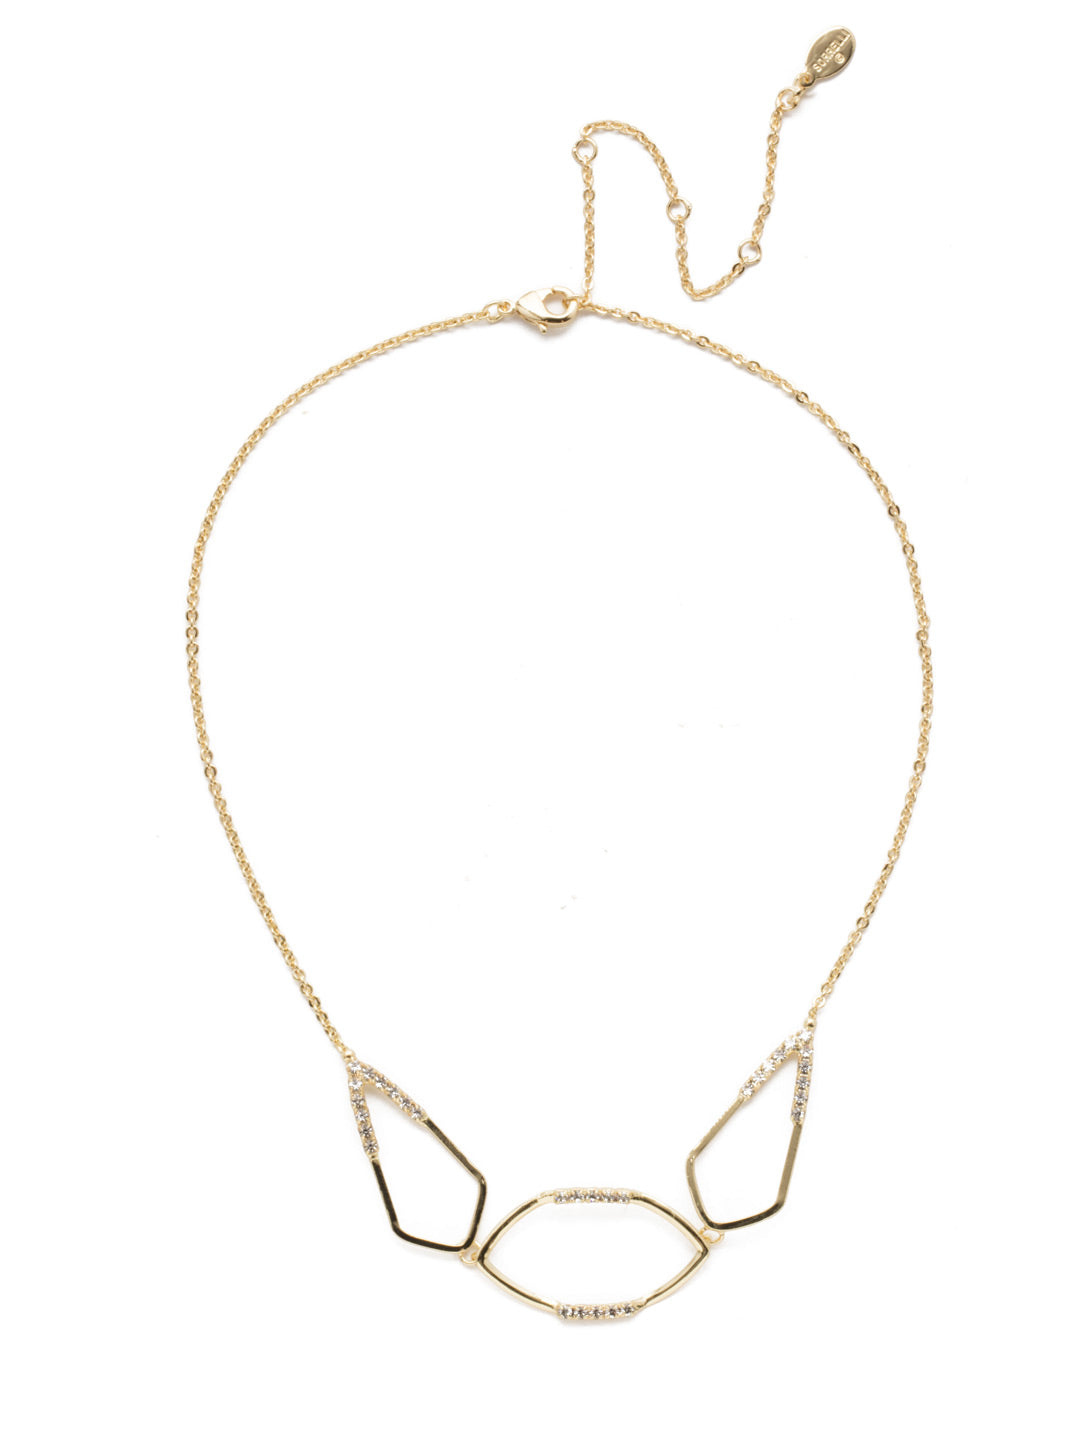 Amenia Offset Statement Necklace - 4NEK23BGCRY